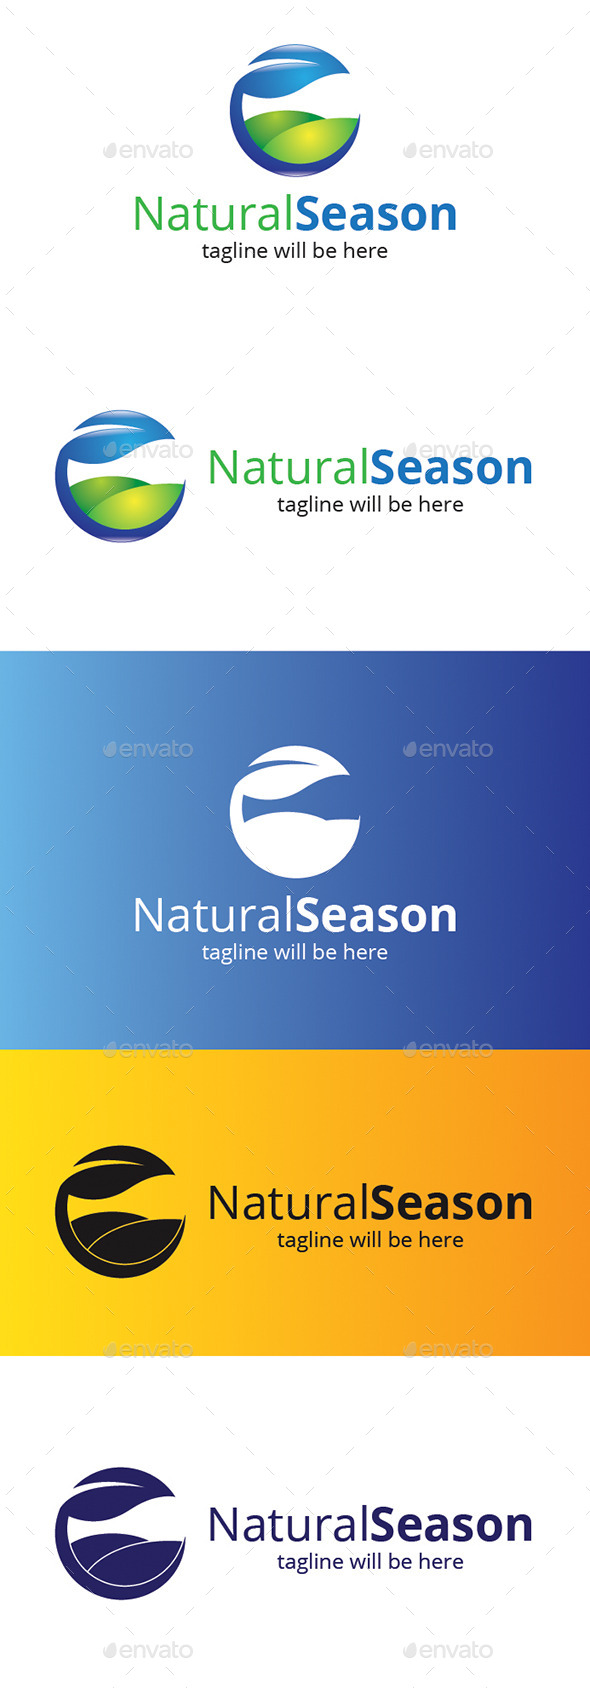 GraphicRiver Natural Season 9308695